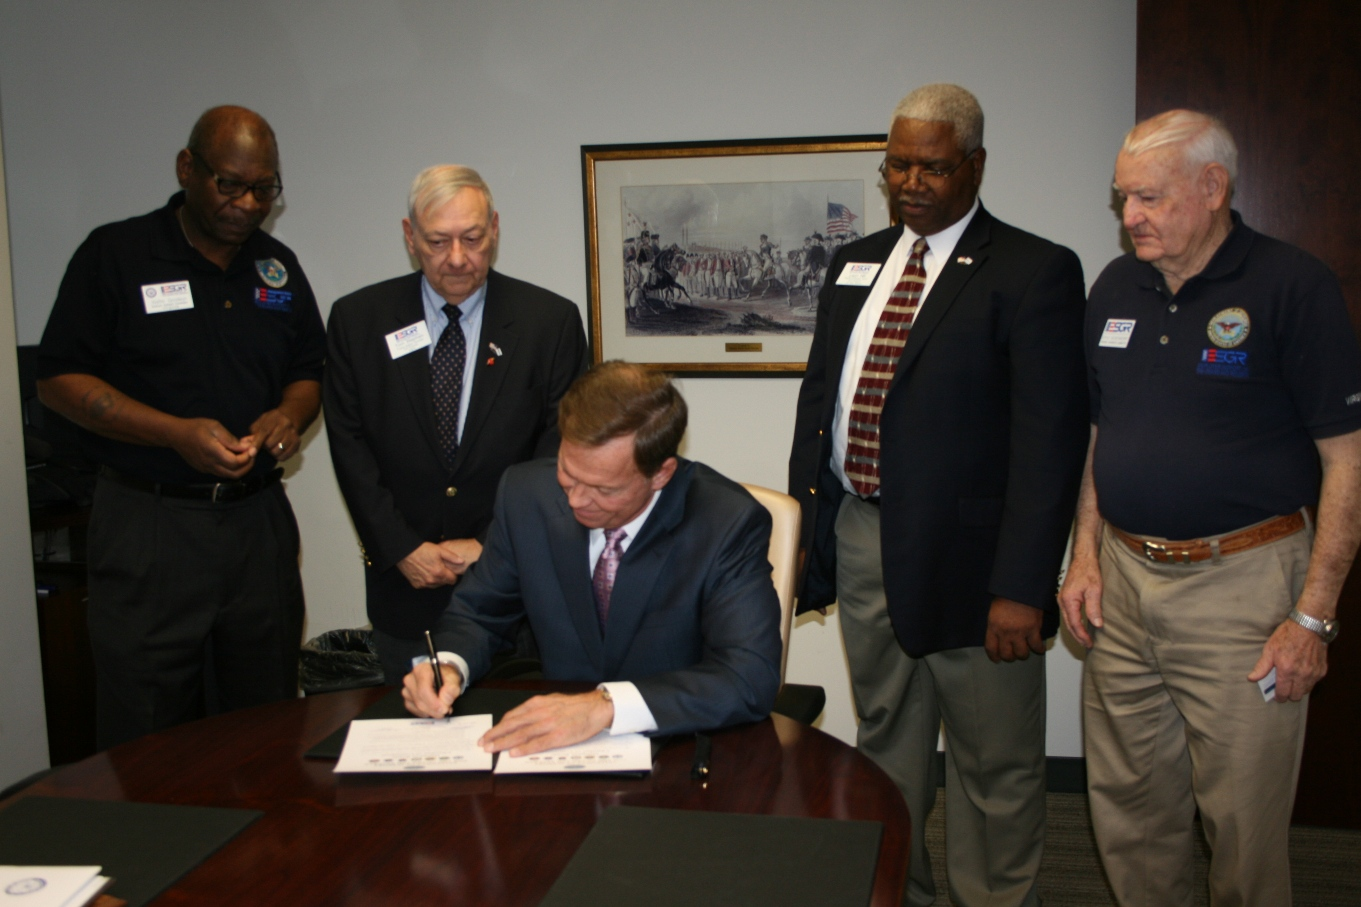 The Chamber's President & CEO Bryan Stephens signs a statement of support as members of ESGR look on (from left) Walter Goodwyn, MGySgt, USMC (Ret.); Thomas Stephen; Leon Hill; and CDR A. Doyle Quisenberry, USNR (Ret.)